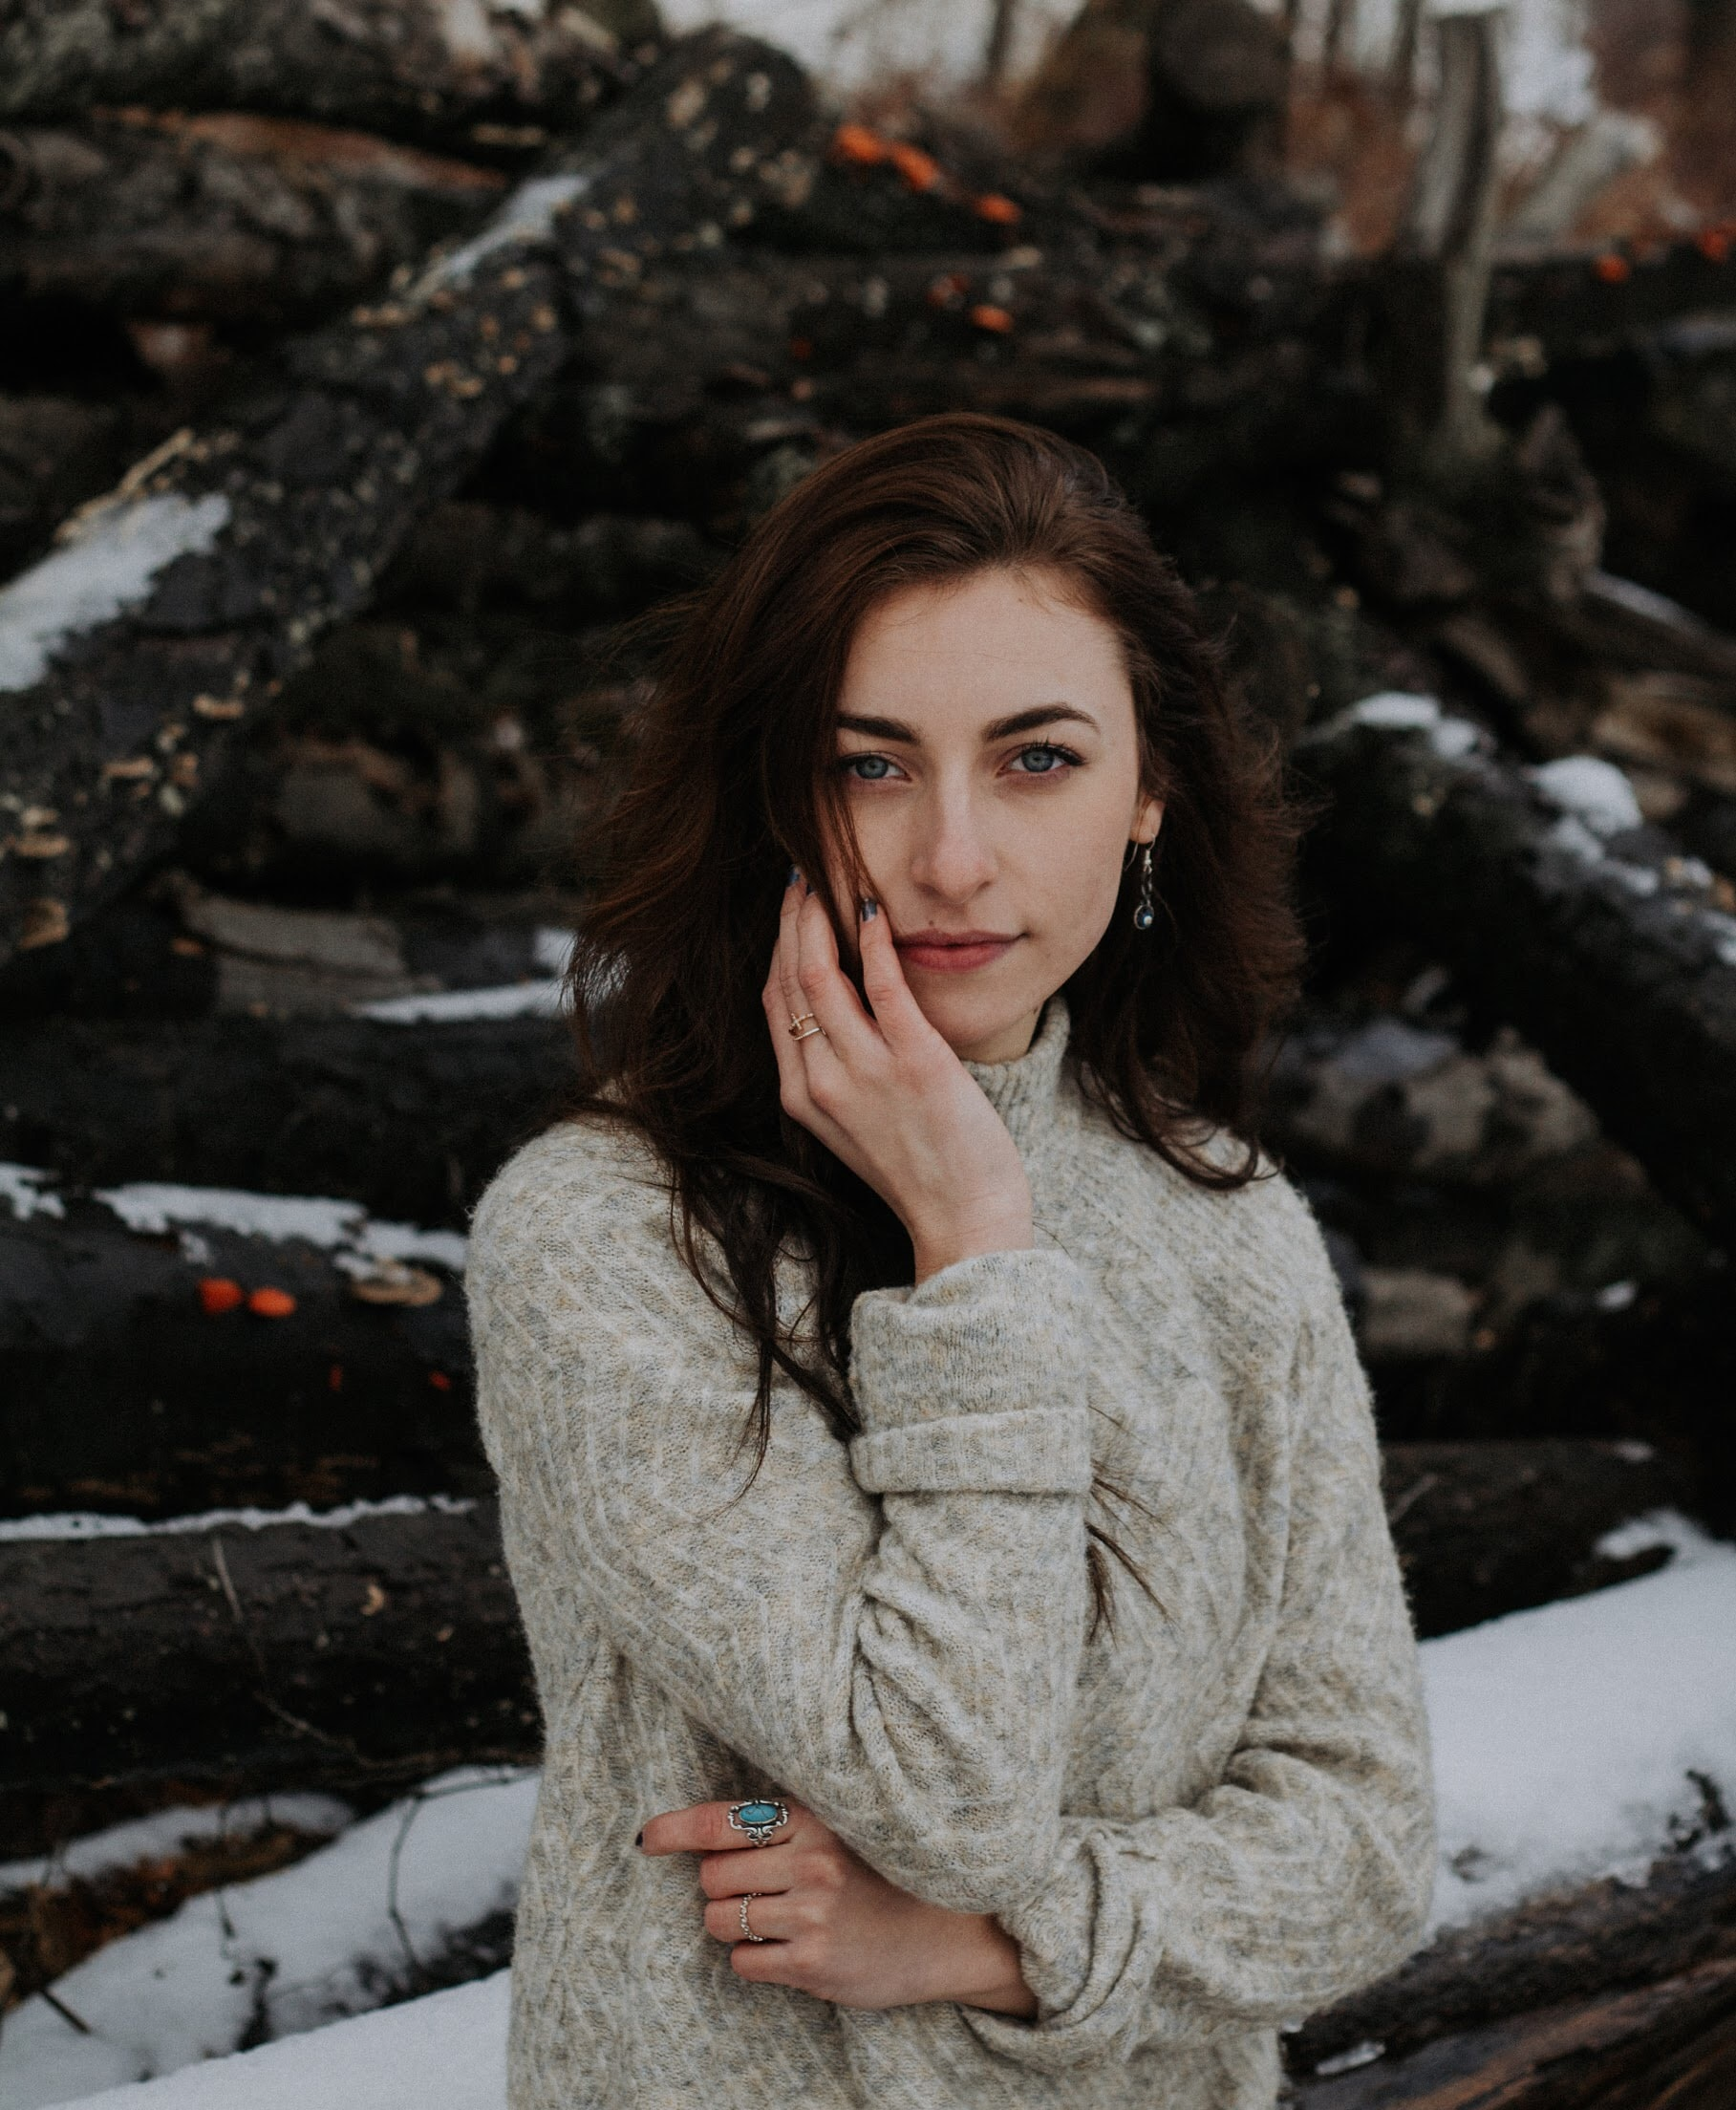 selective focus photography of woman in gray sweater